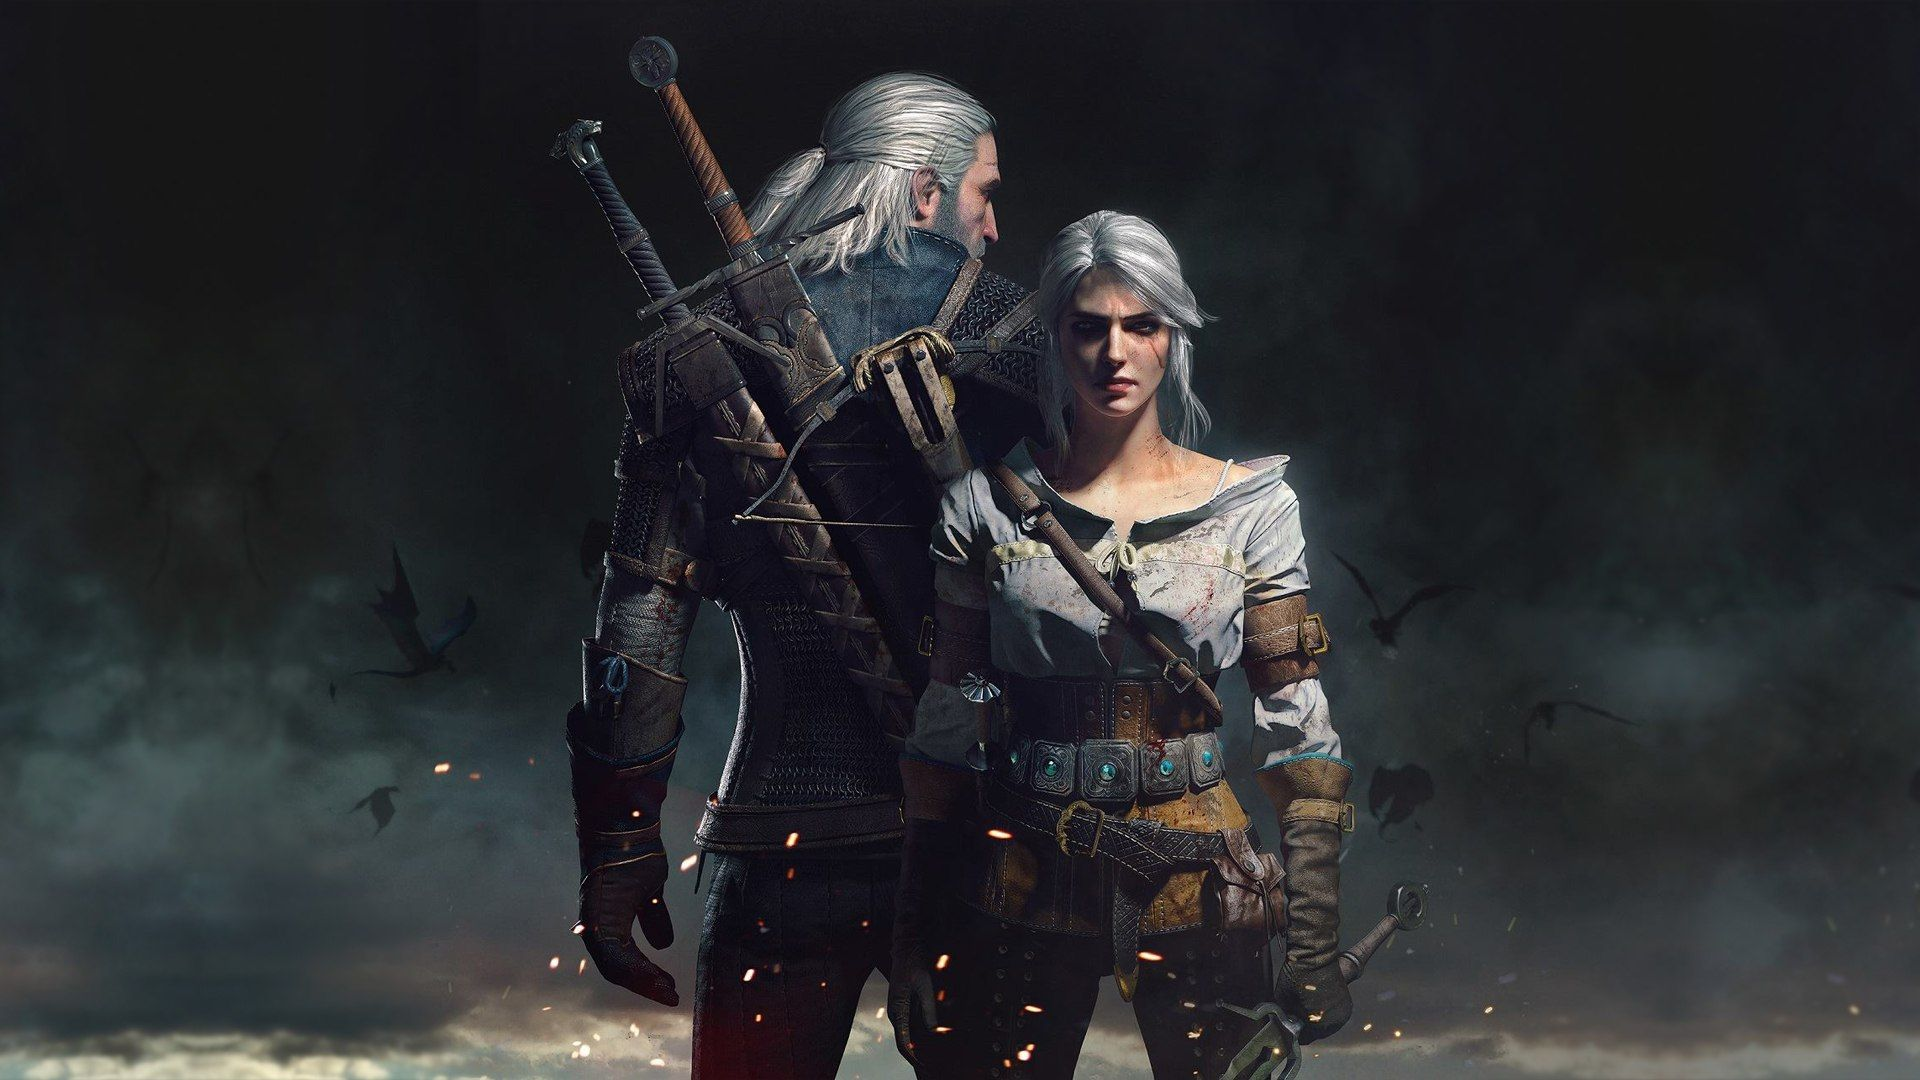 Wallpaper The Witcher 3 Wild Hunt Ciri Scar Overcast Spark